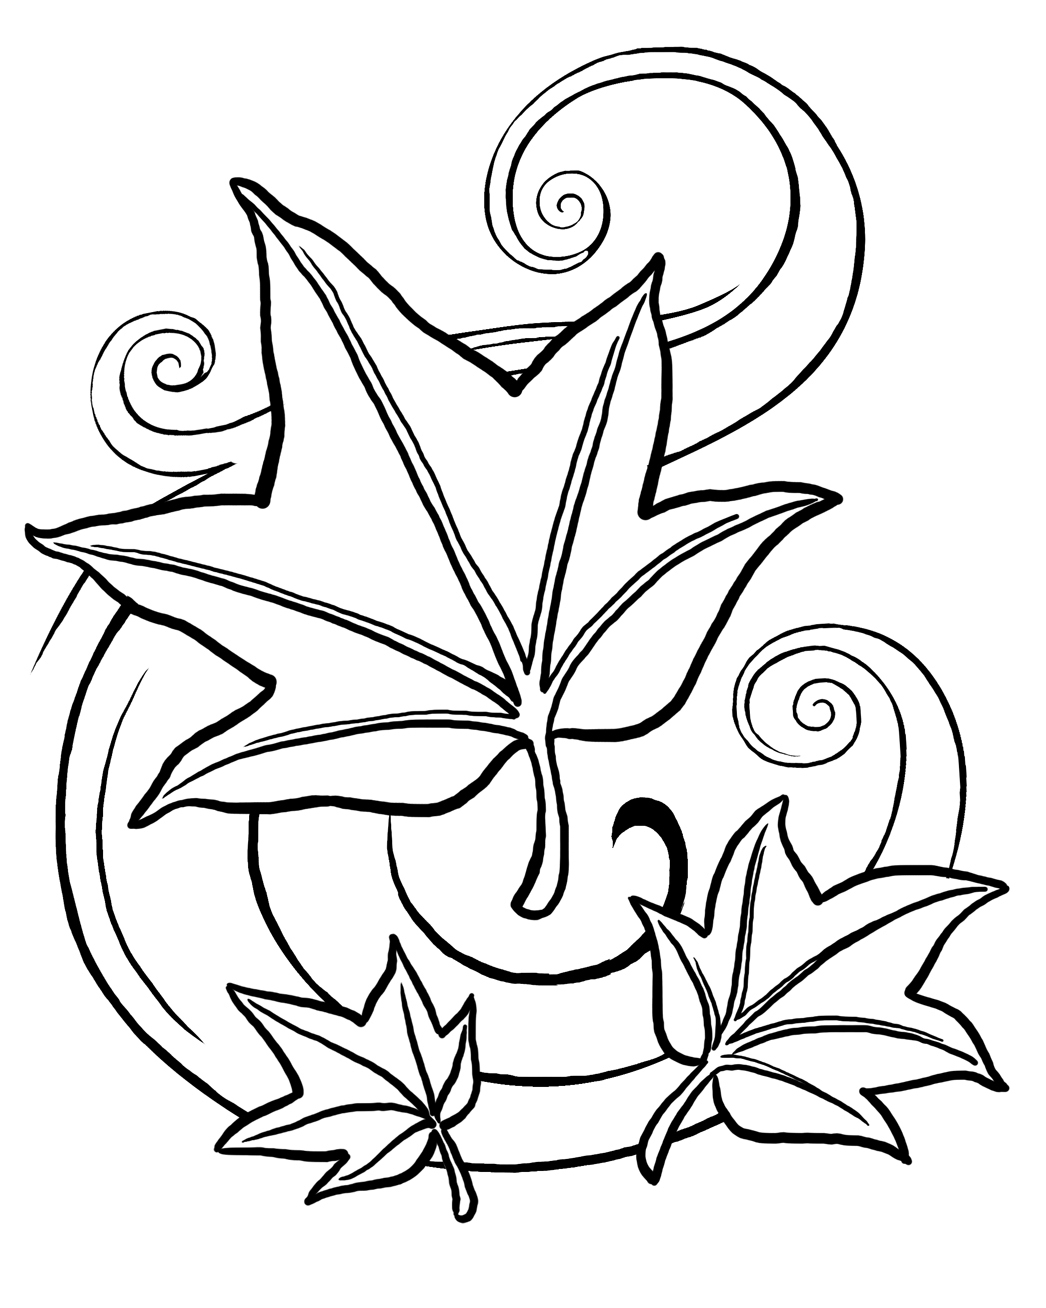 Co coloring page for leaves - Co Coloring Page For Leaves 5